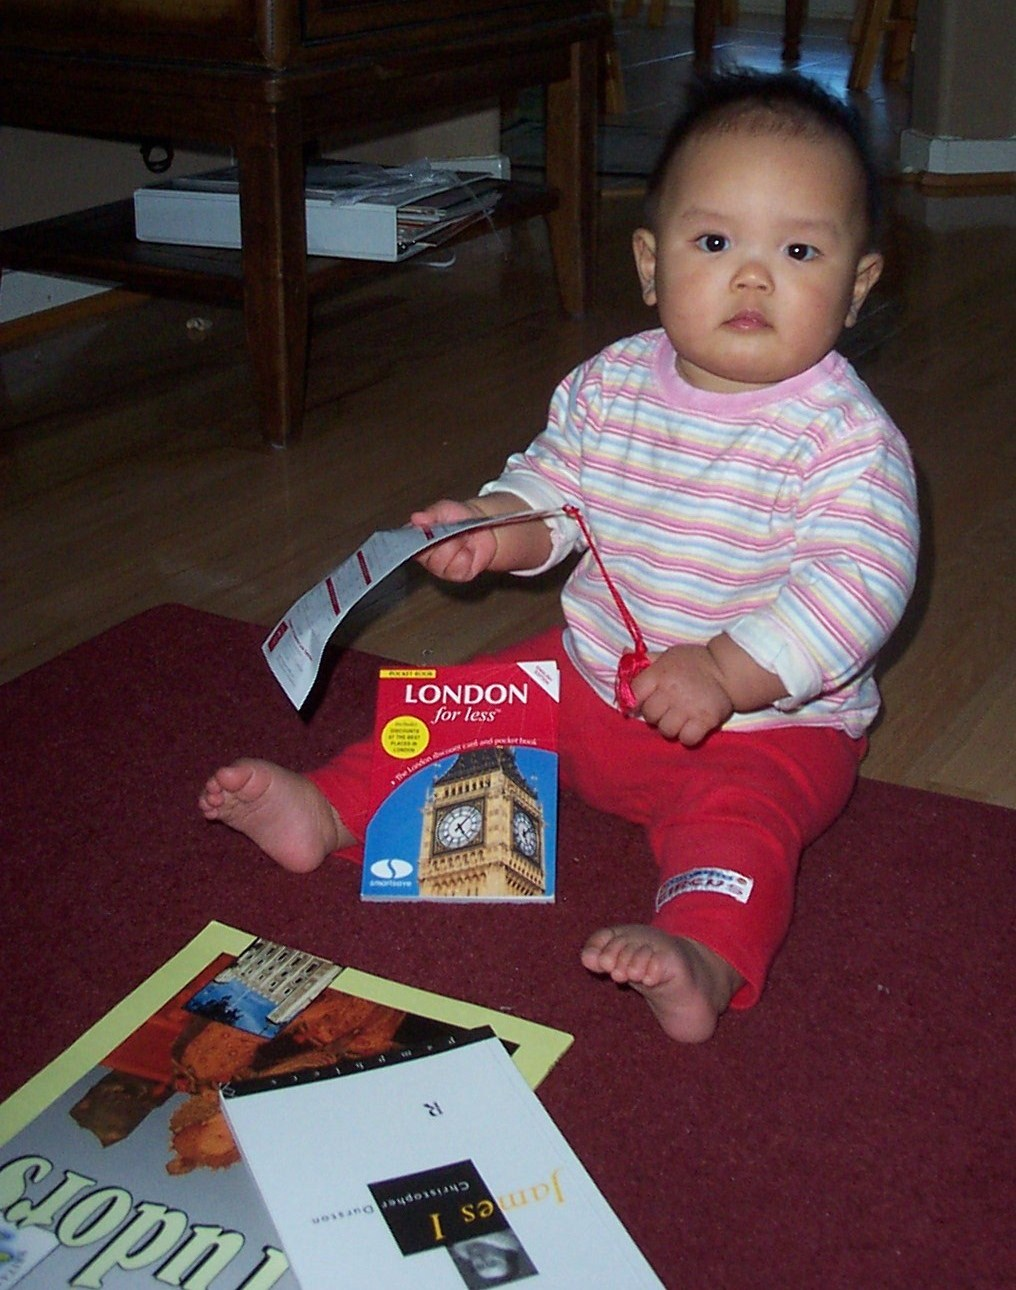 Planning her very first trip to England, Christmas Eve 2003